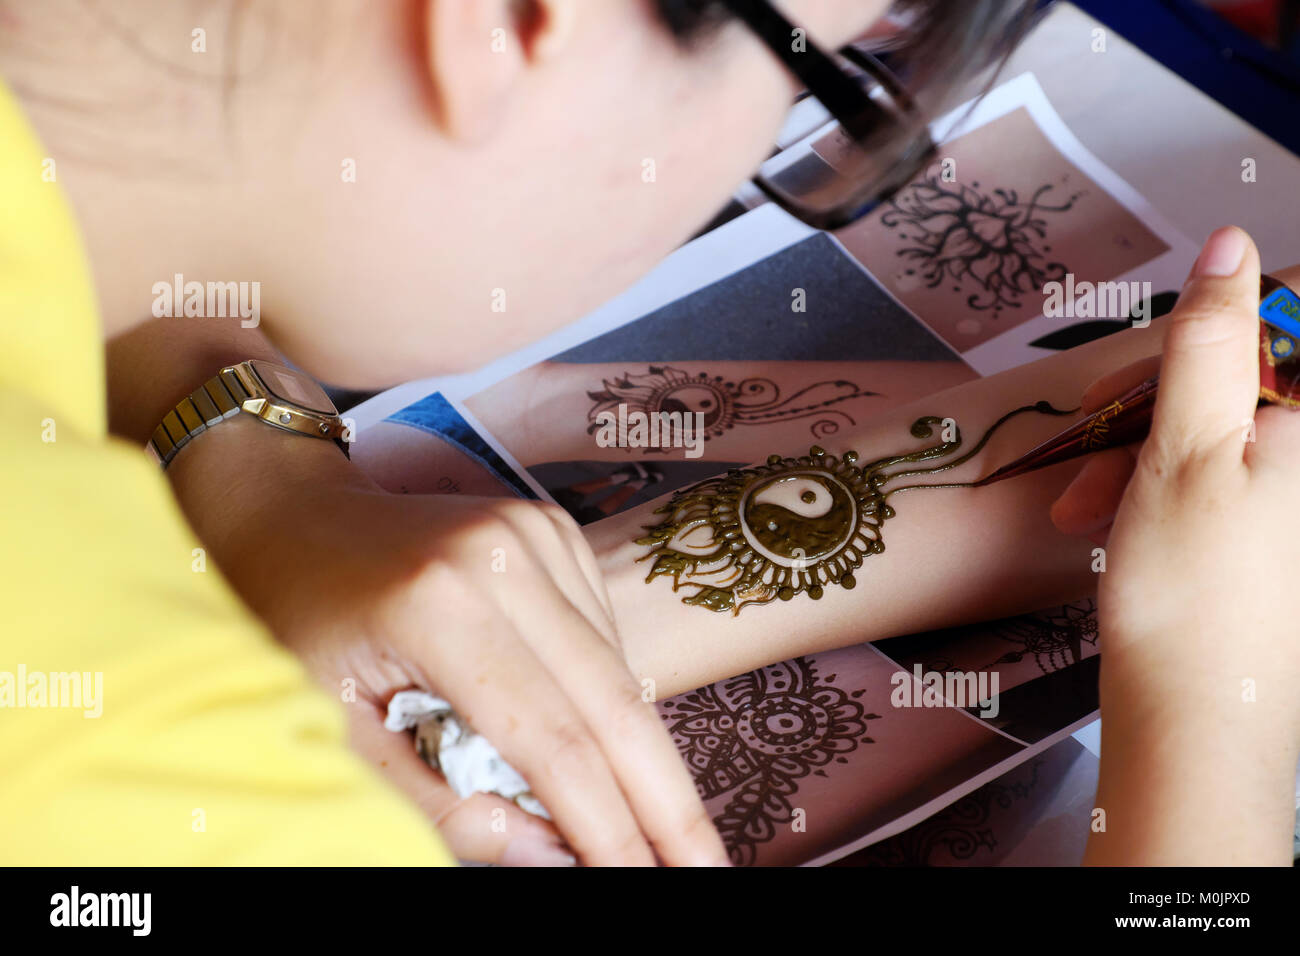 Artist drawing henna pattern on woman hand, a tradition art